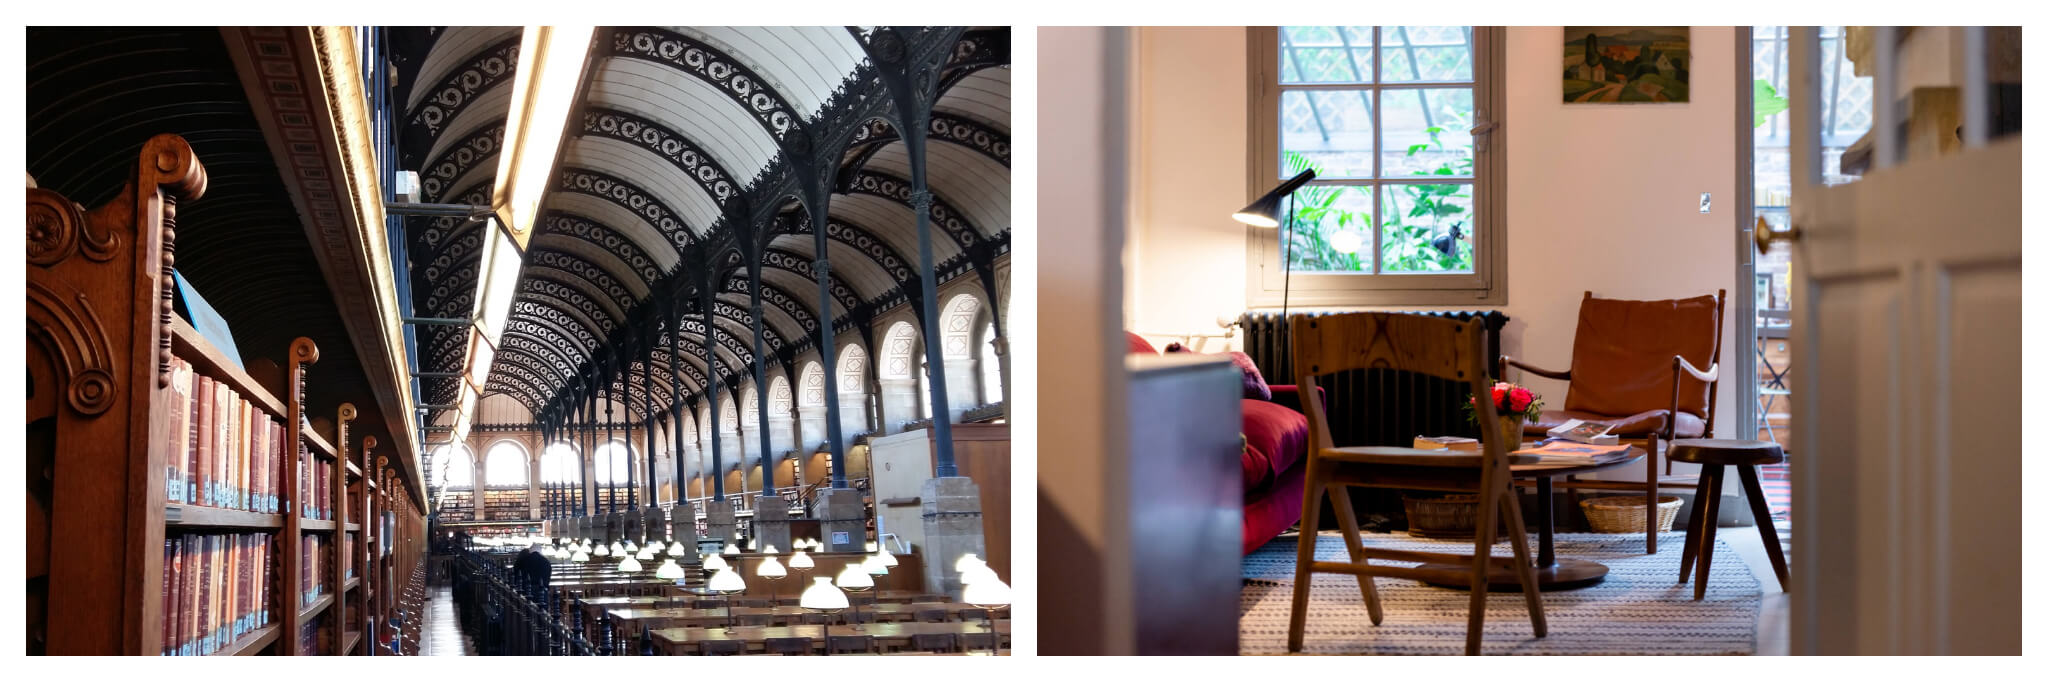 Left: Salle Labrouste, which is a library in the Latin Quarter, with light pouring in through the windows, Right: Empty chairs sit on opposite sides of a small table at Treize au Jardin